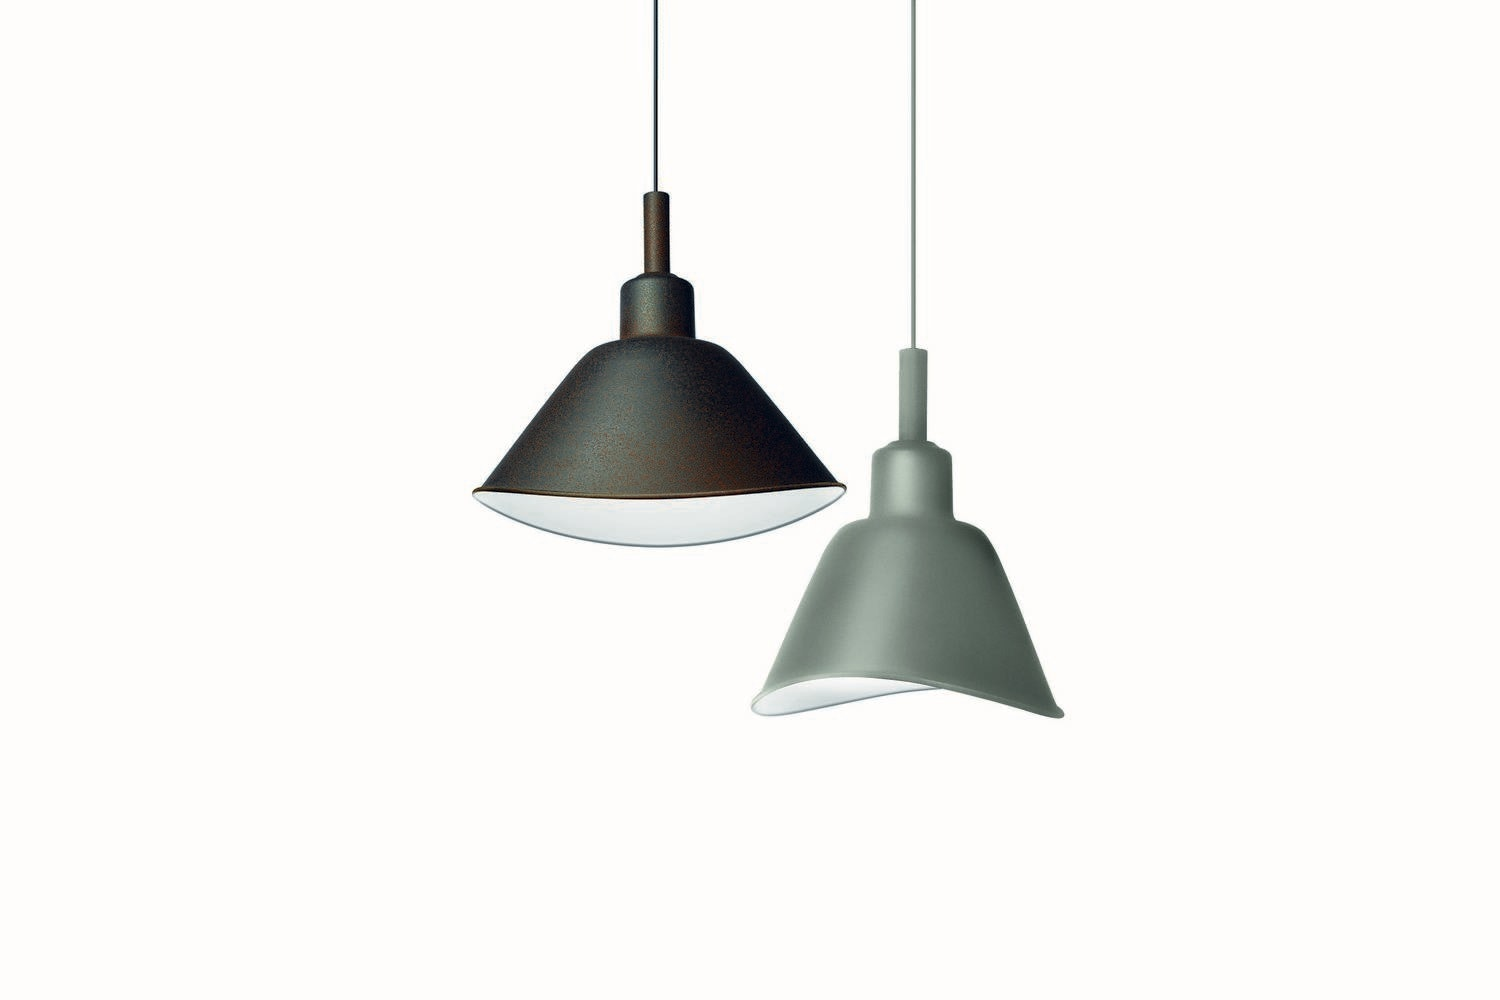 Smash Suspension Lamp by Successful Living from DIESEL for Foscarini